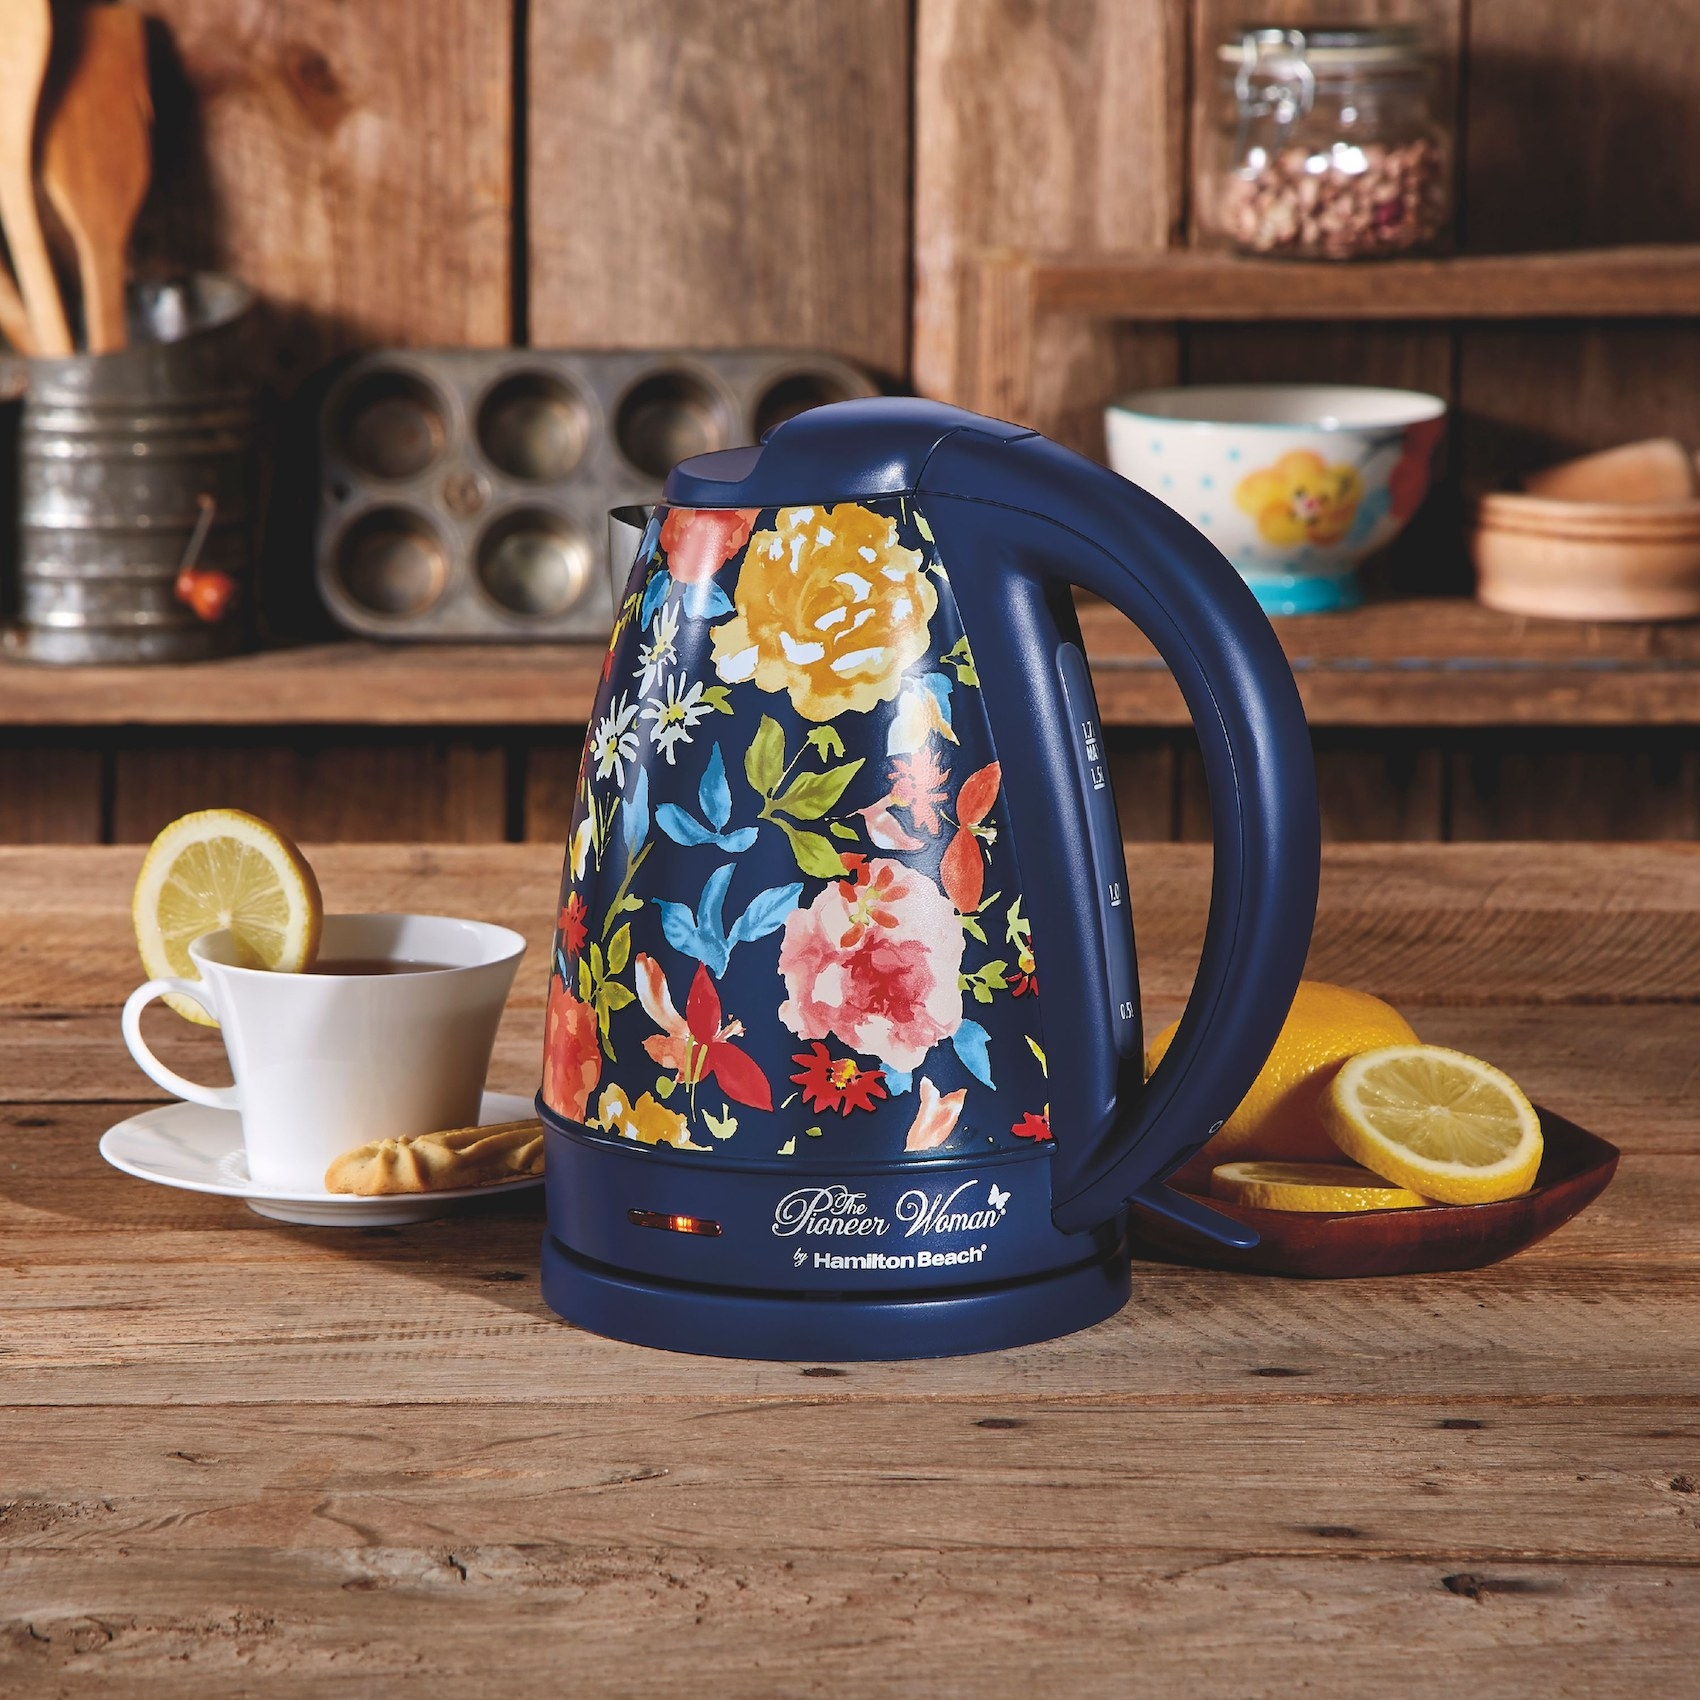 The electric kettle with a blue floral pattern in a kitchen